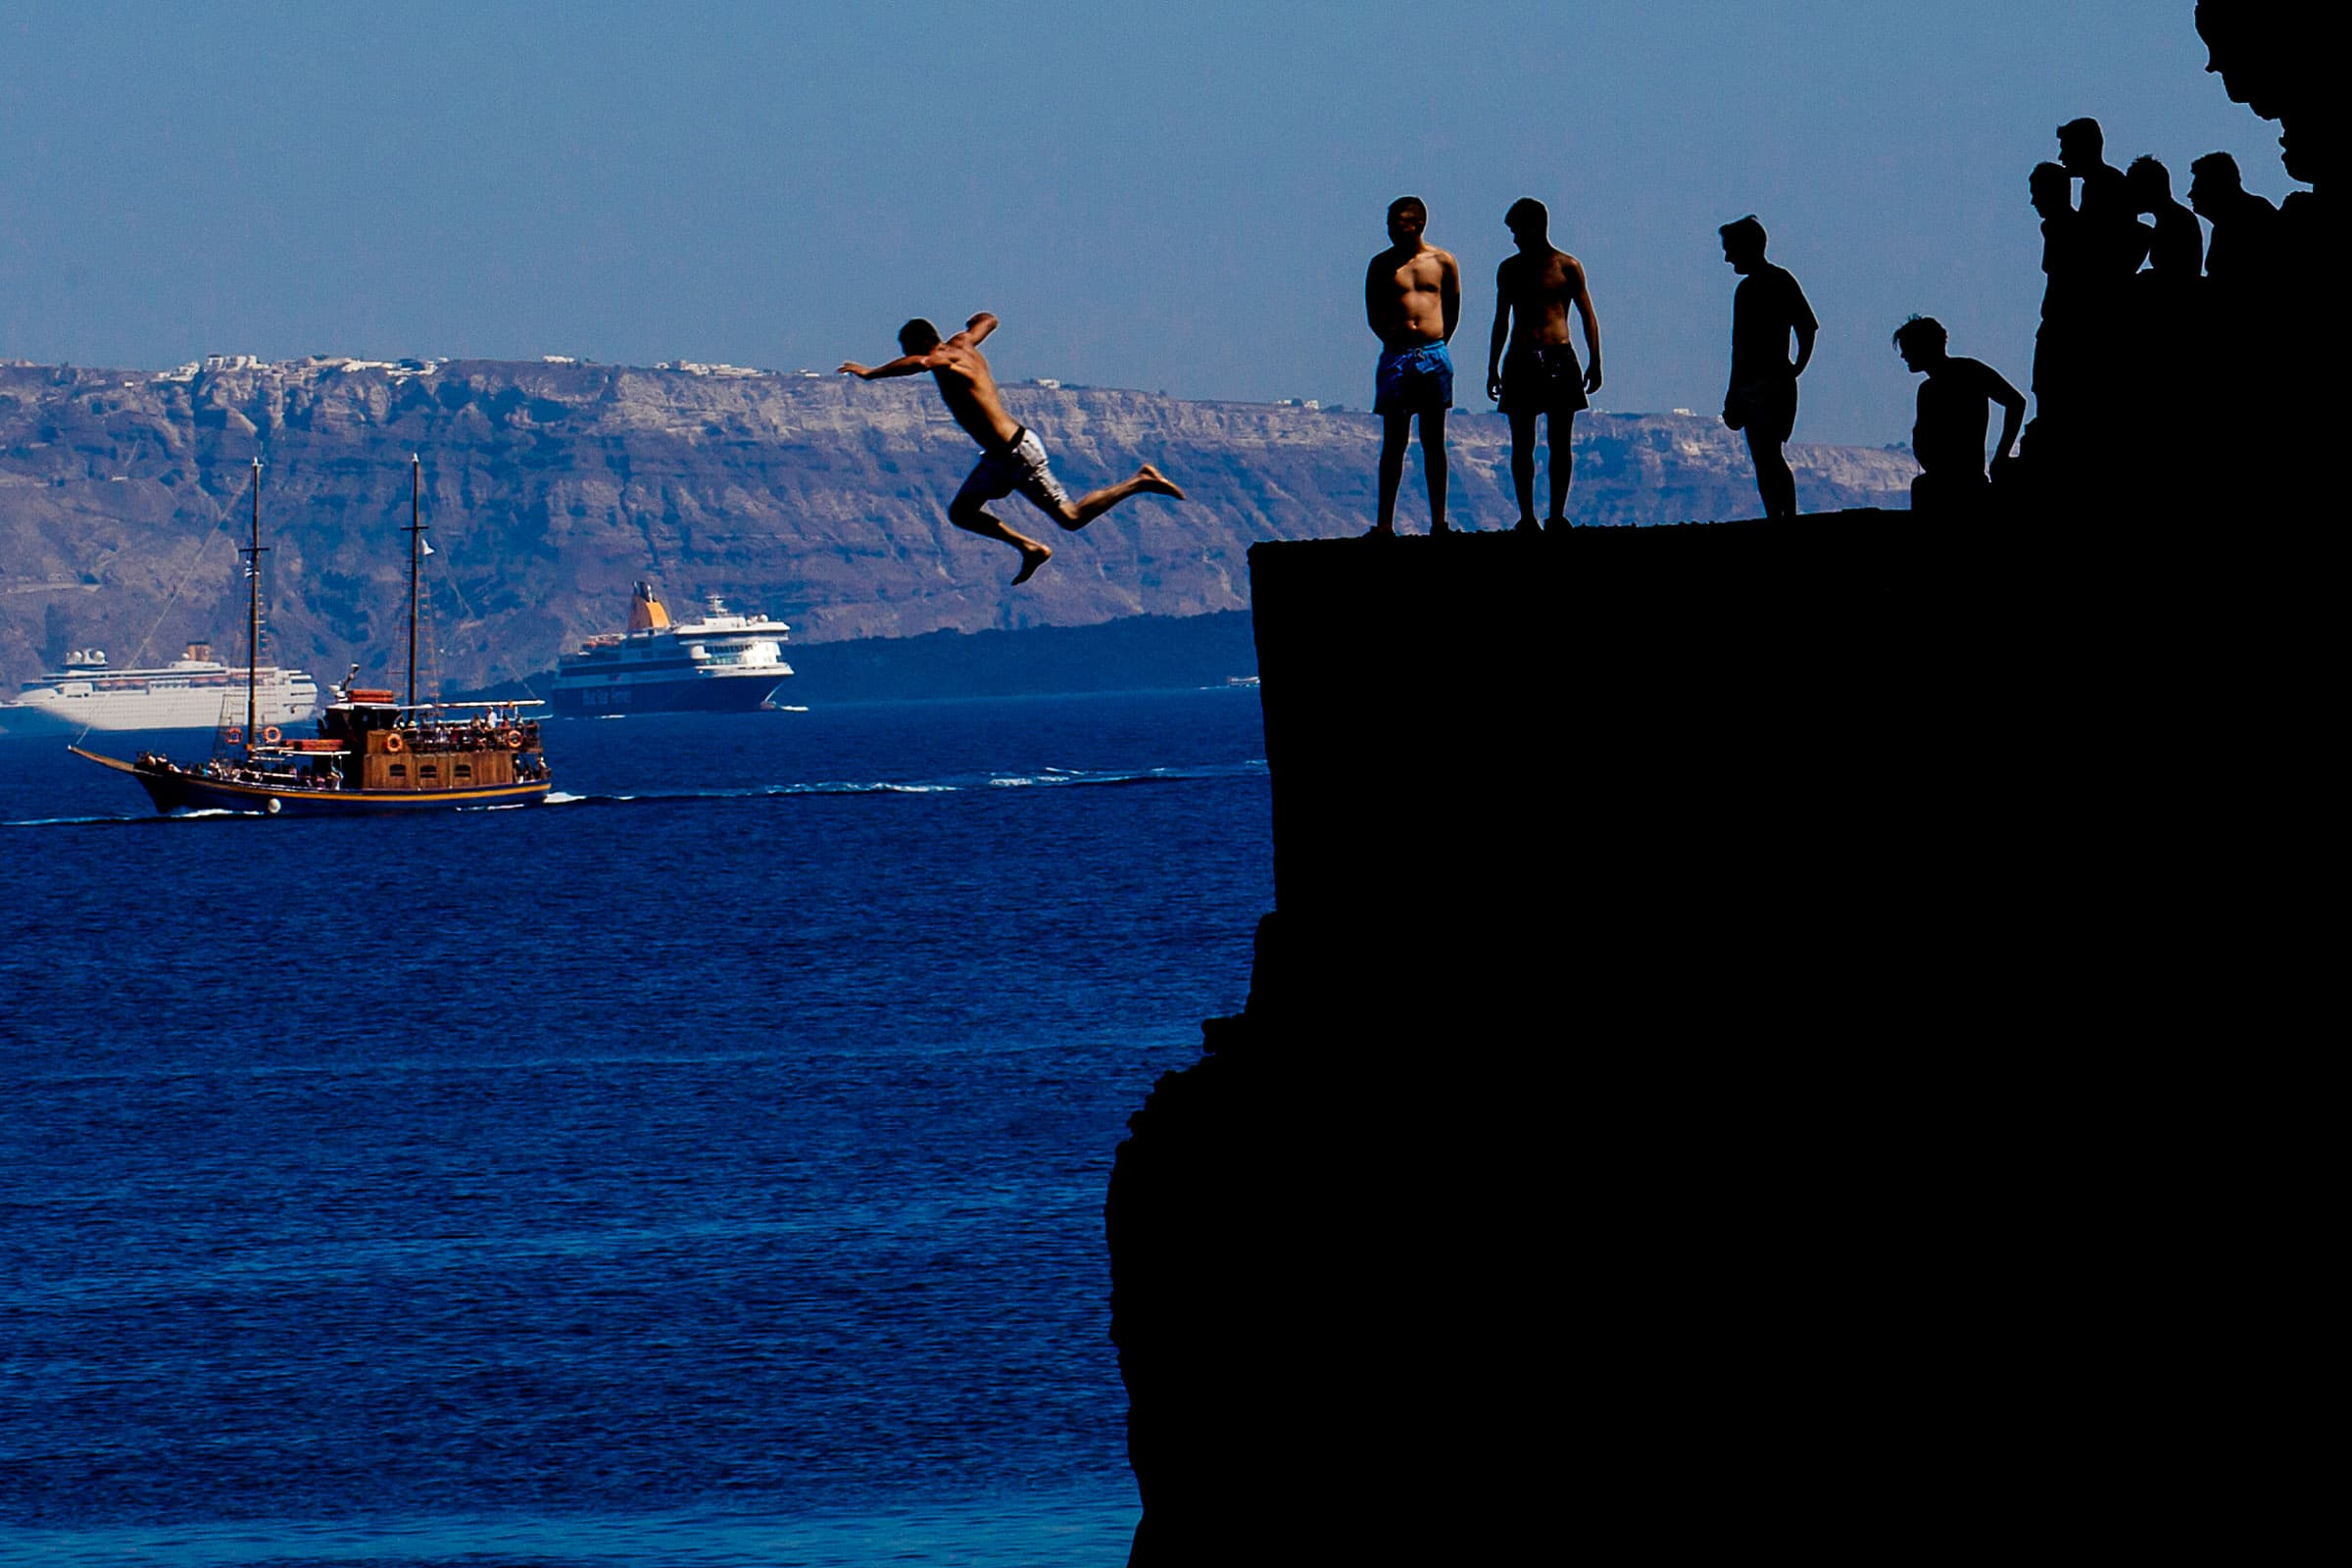 Men jumping of a massive cliff into the ocean while photographers are exploring Santorini Greece Engagement photo ideas